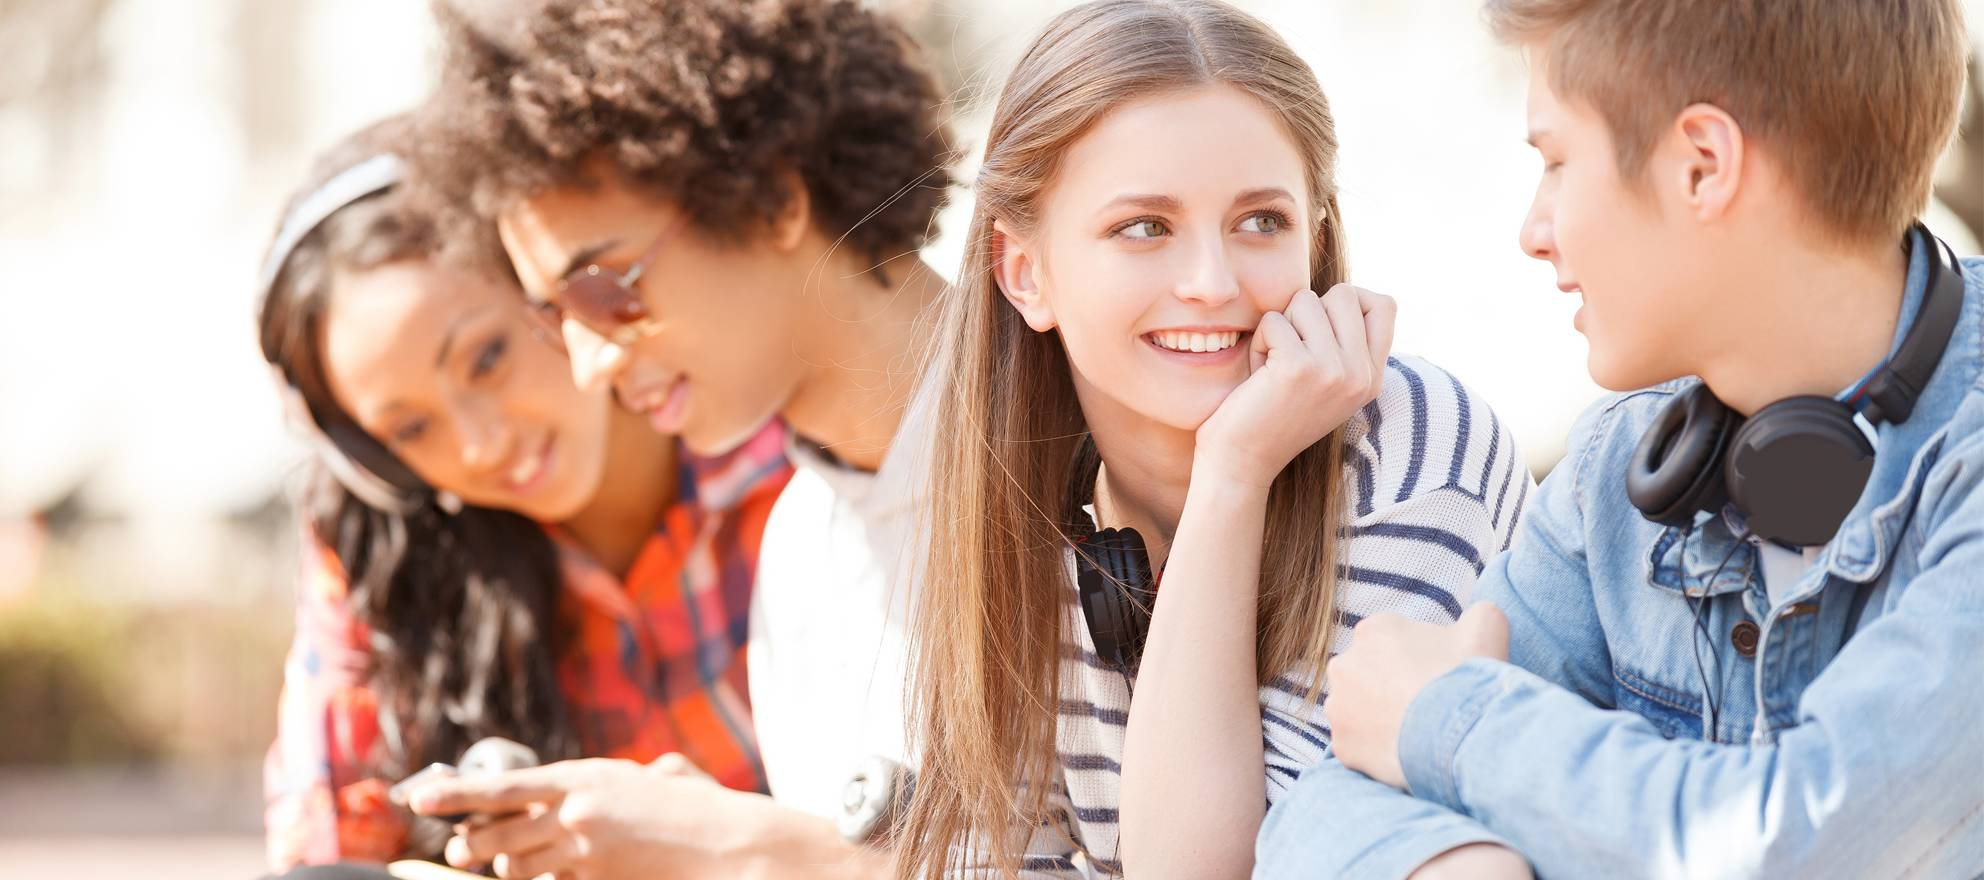 Better Homes and Gardens Real Estate Gen Z focus group homes in on future buyers